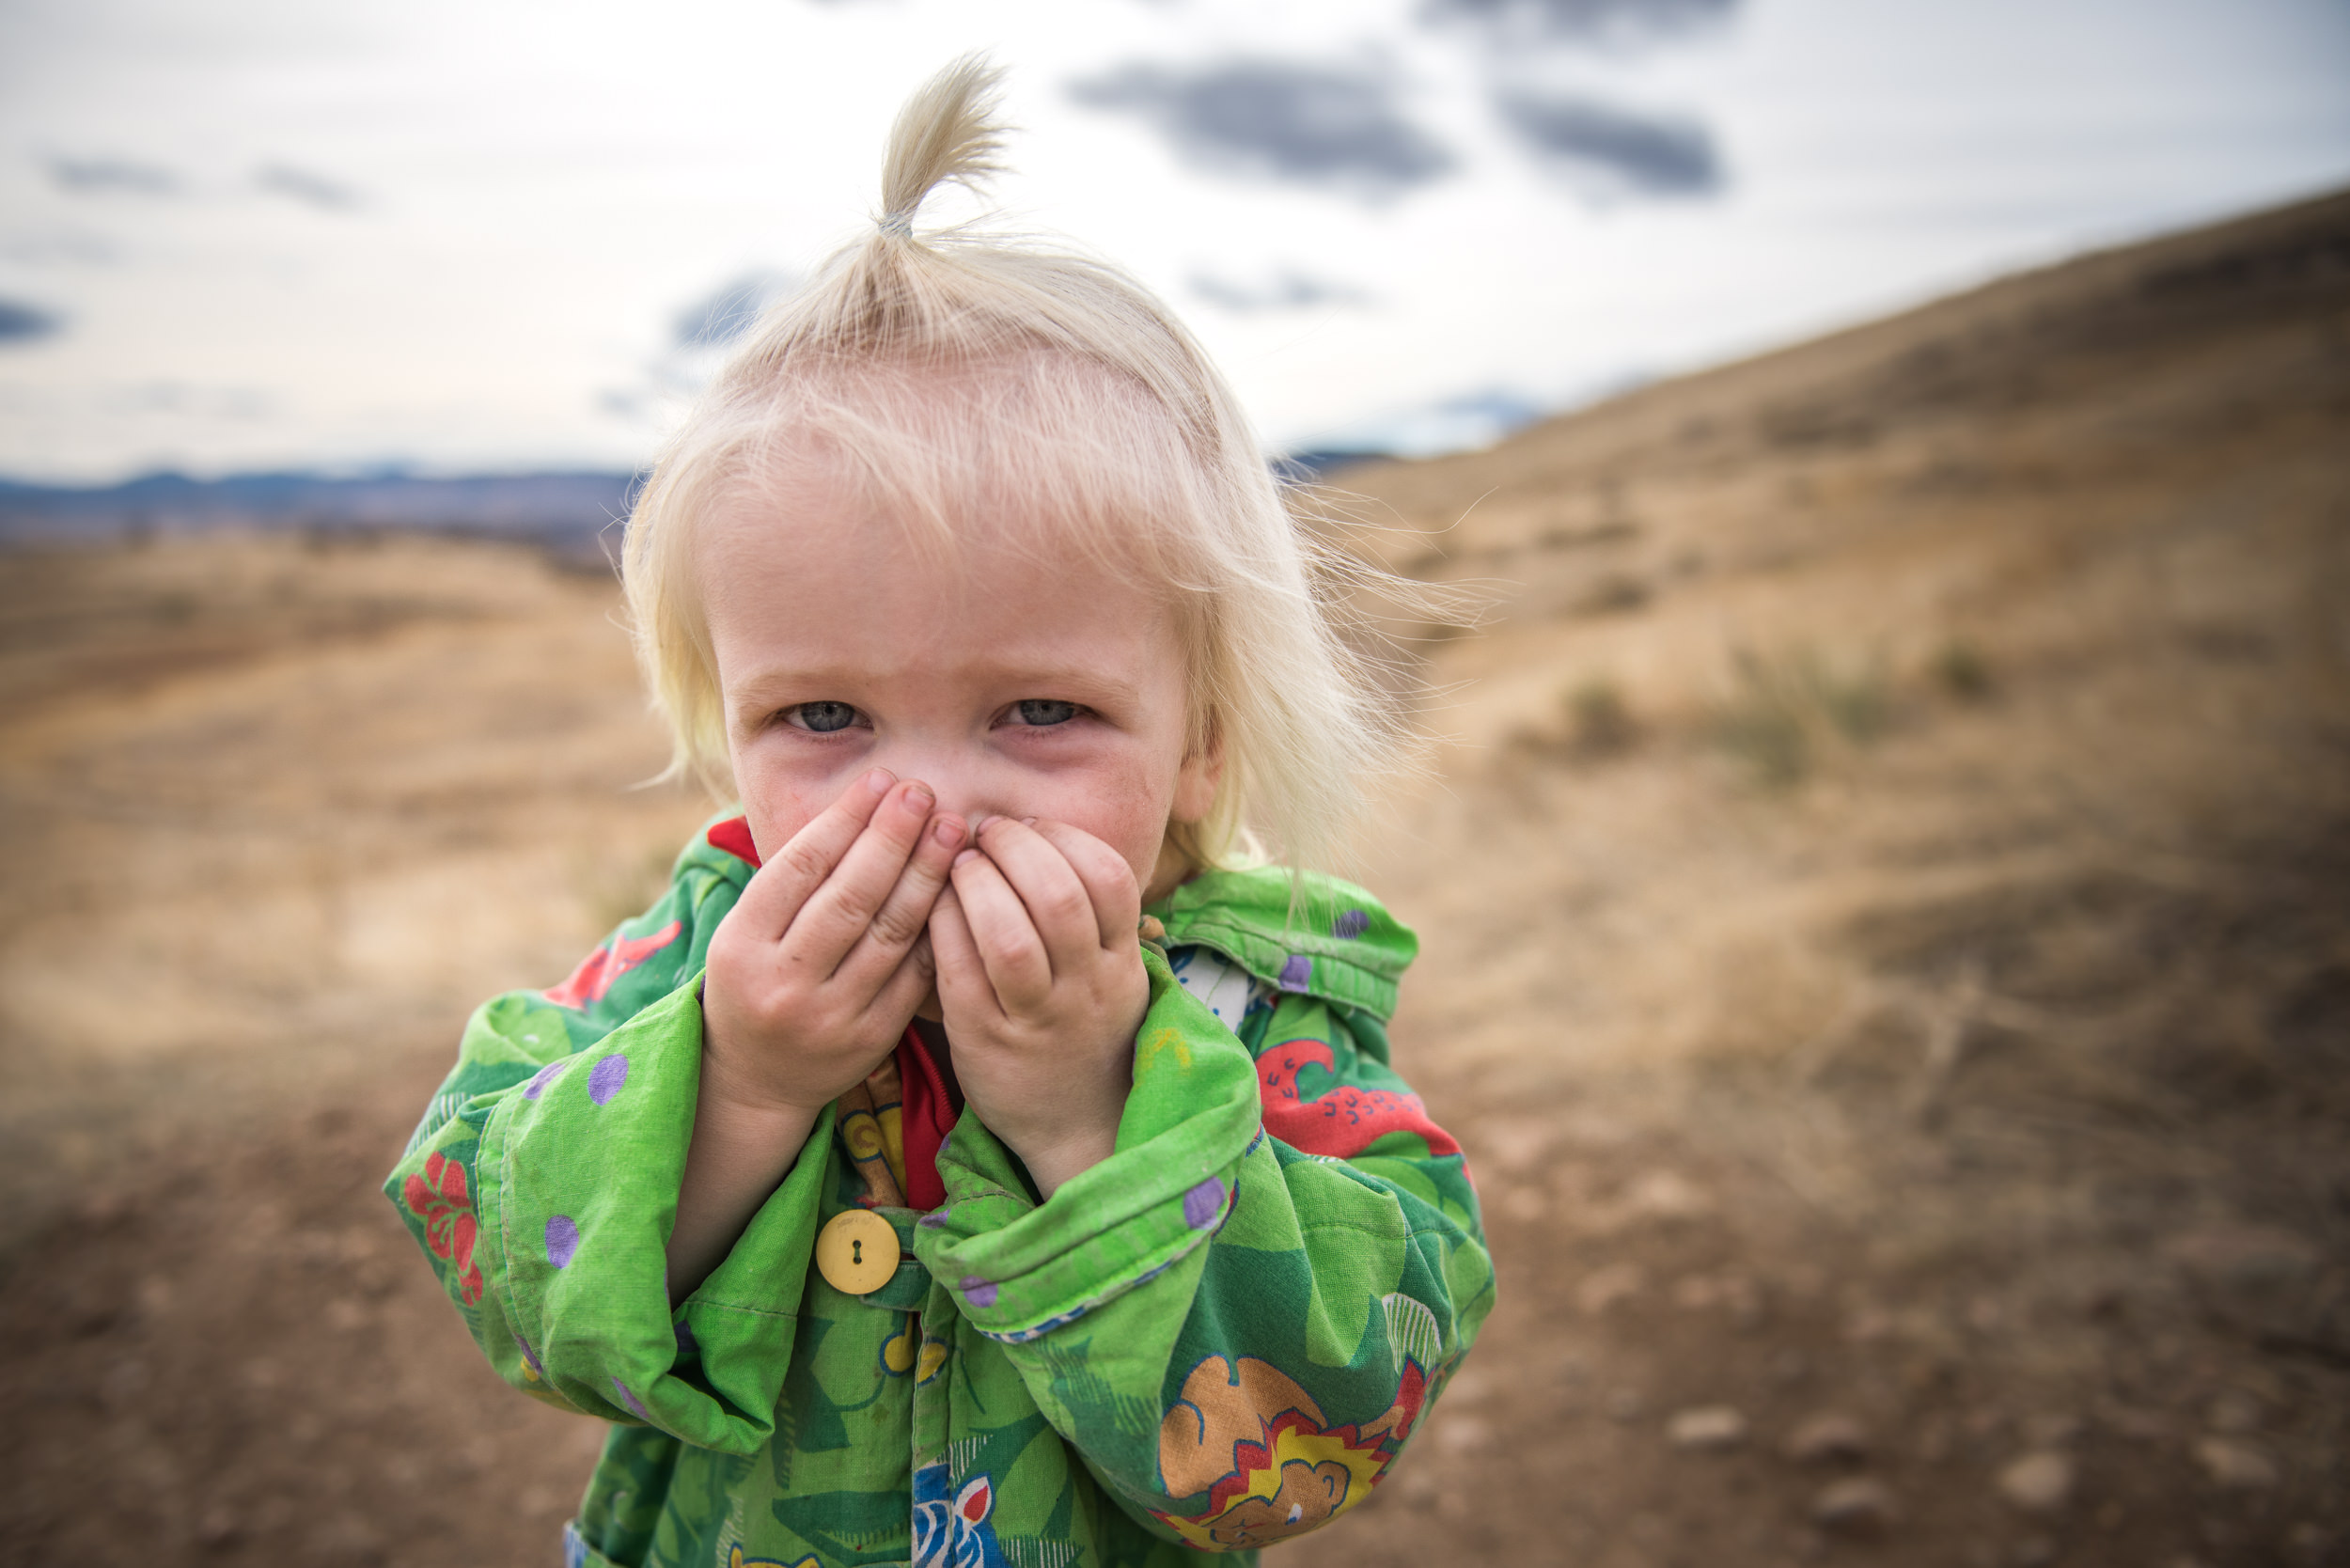 Blog - Molly Rees Photo - Documentary Childhood Photography - boy on green mountain hiking trail in denver colorado by M. Menschel